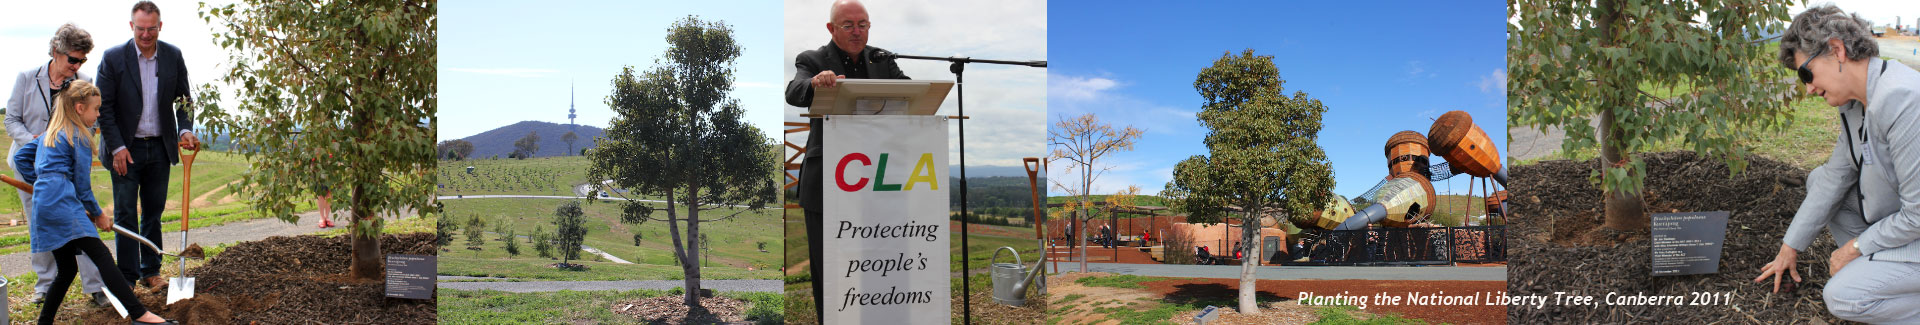 April 09 Newsletter – CLA to decide strategy on liberties/rights charter